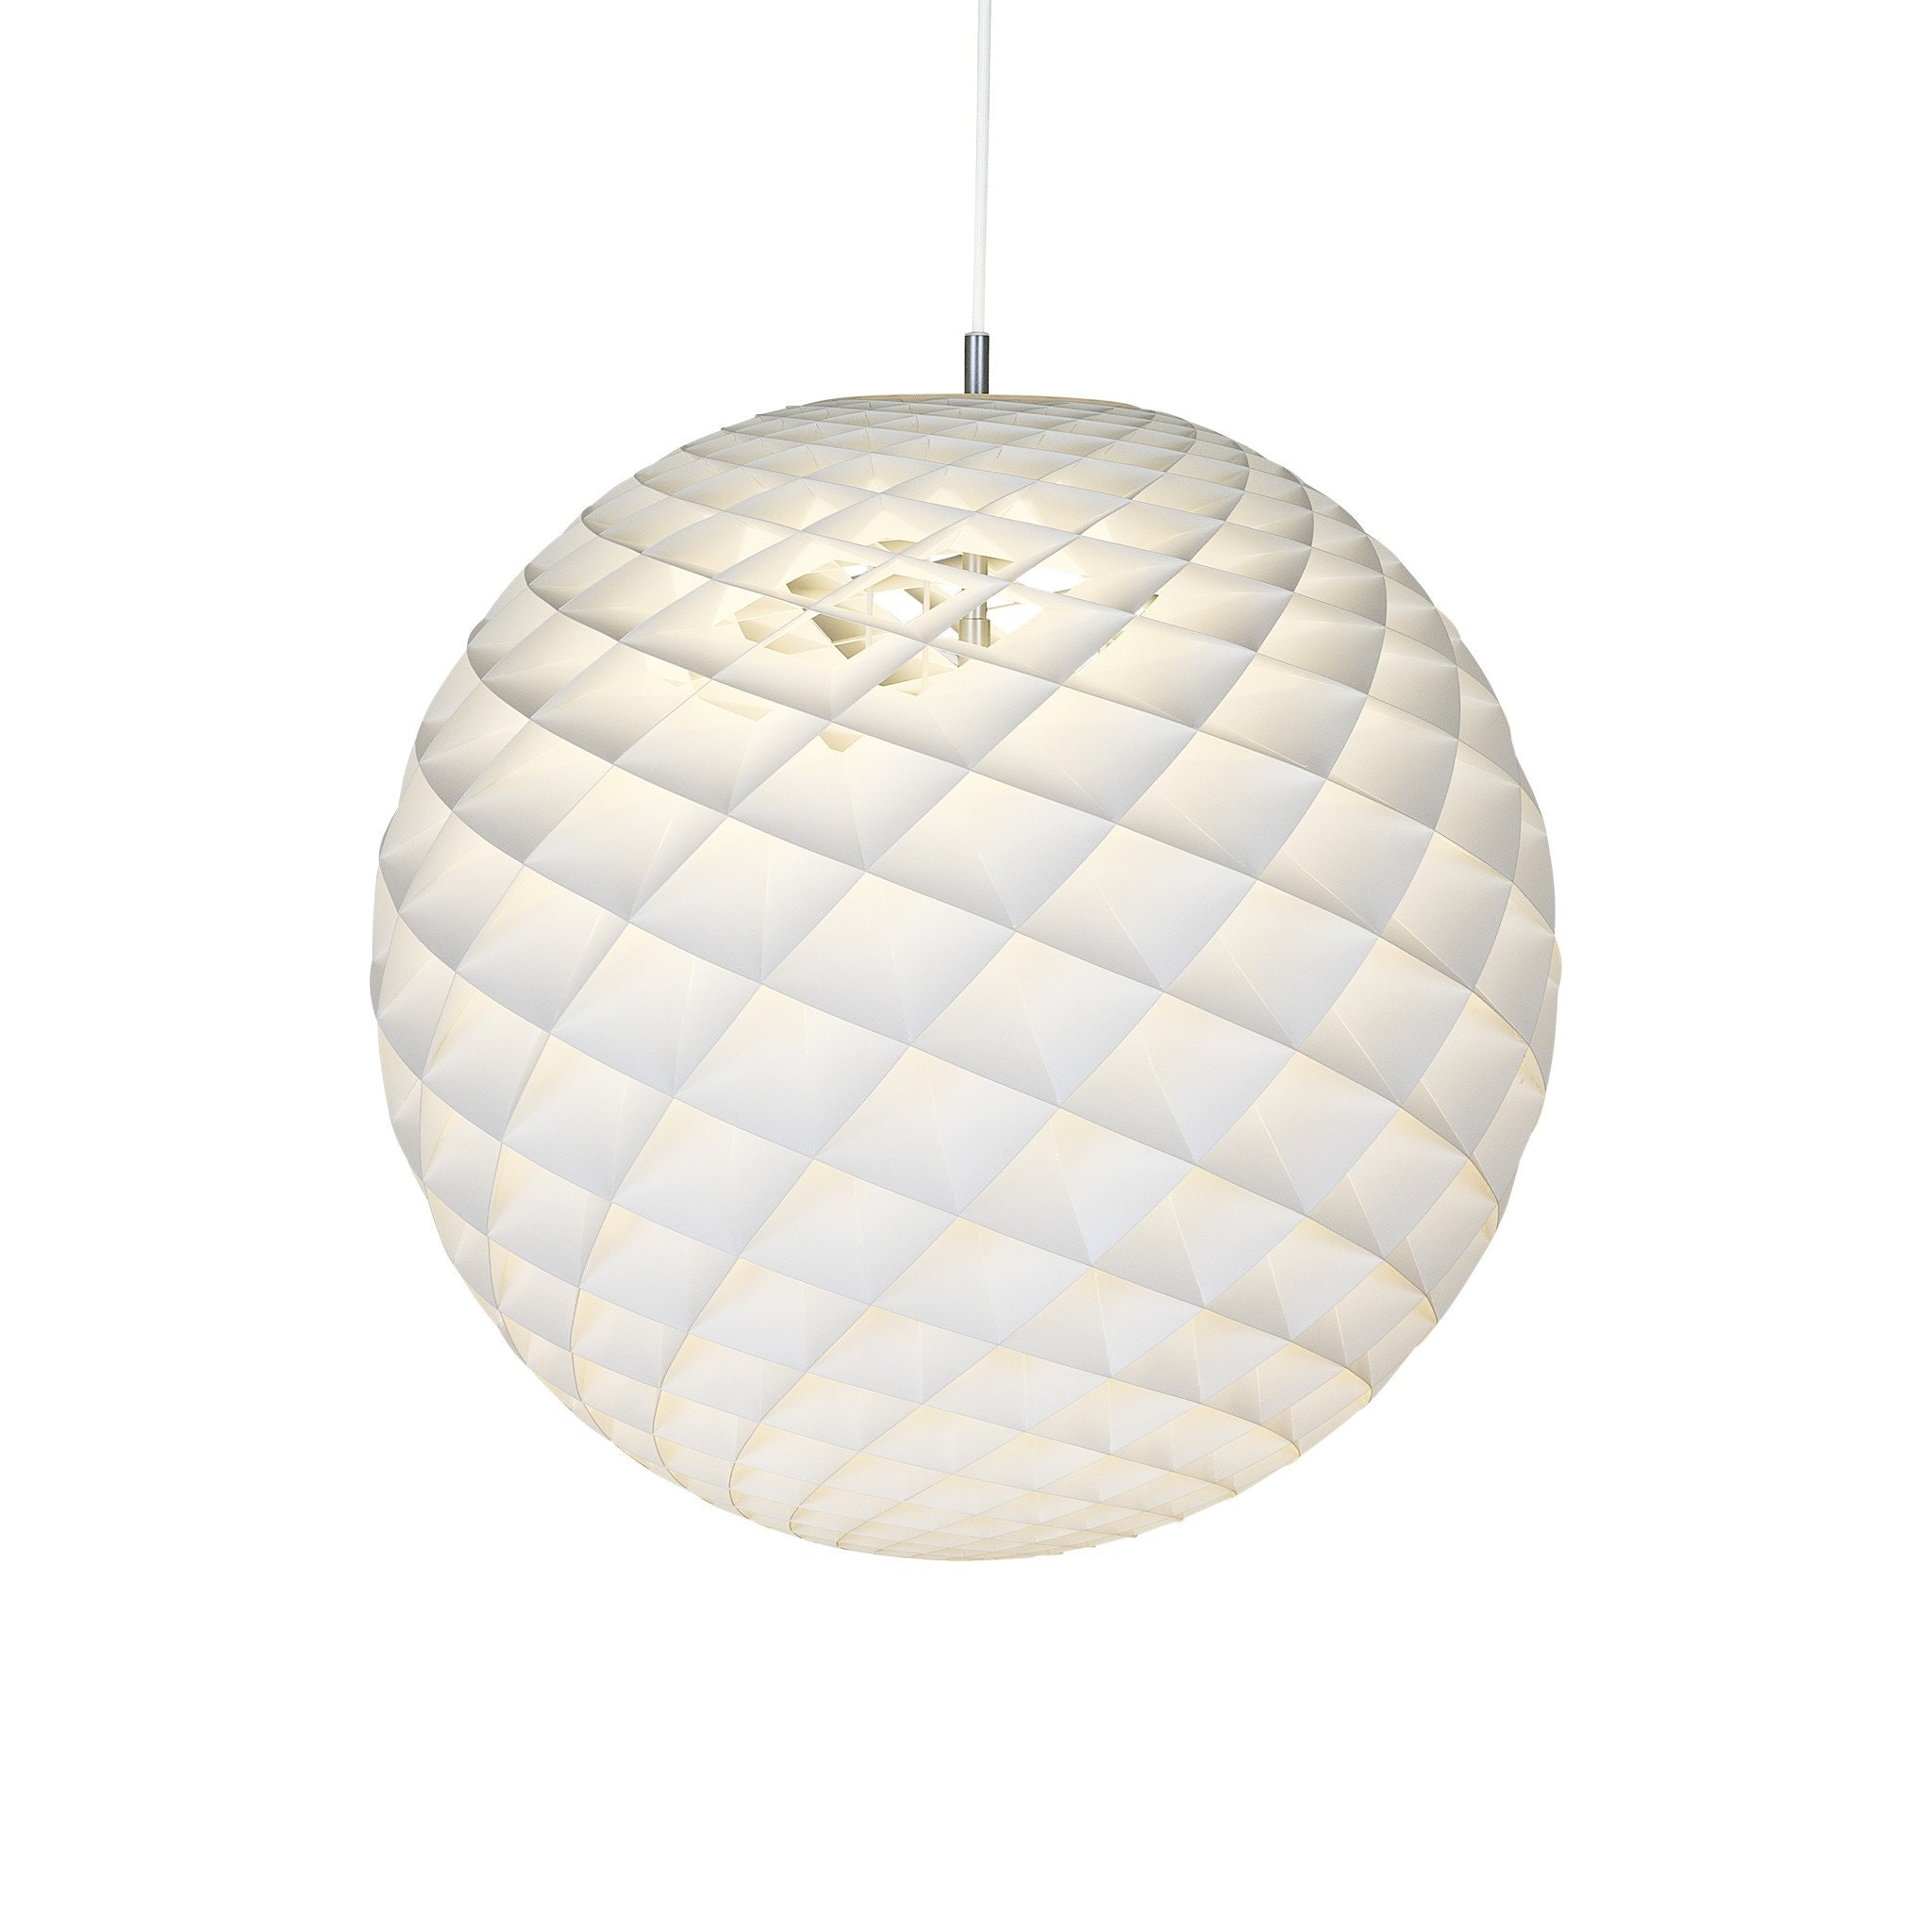 Patera Pendant Light by Louis Poulsen